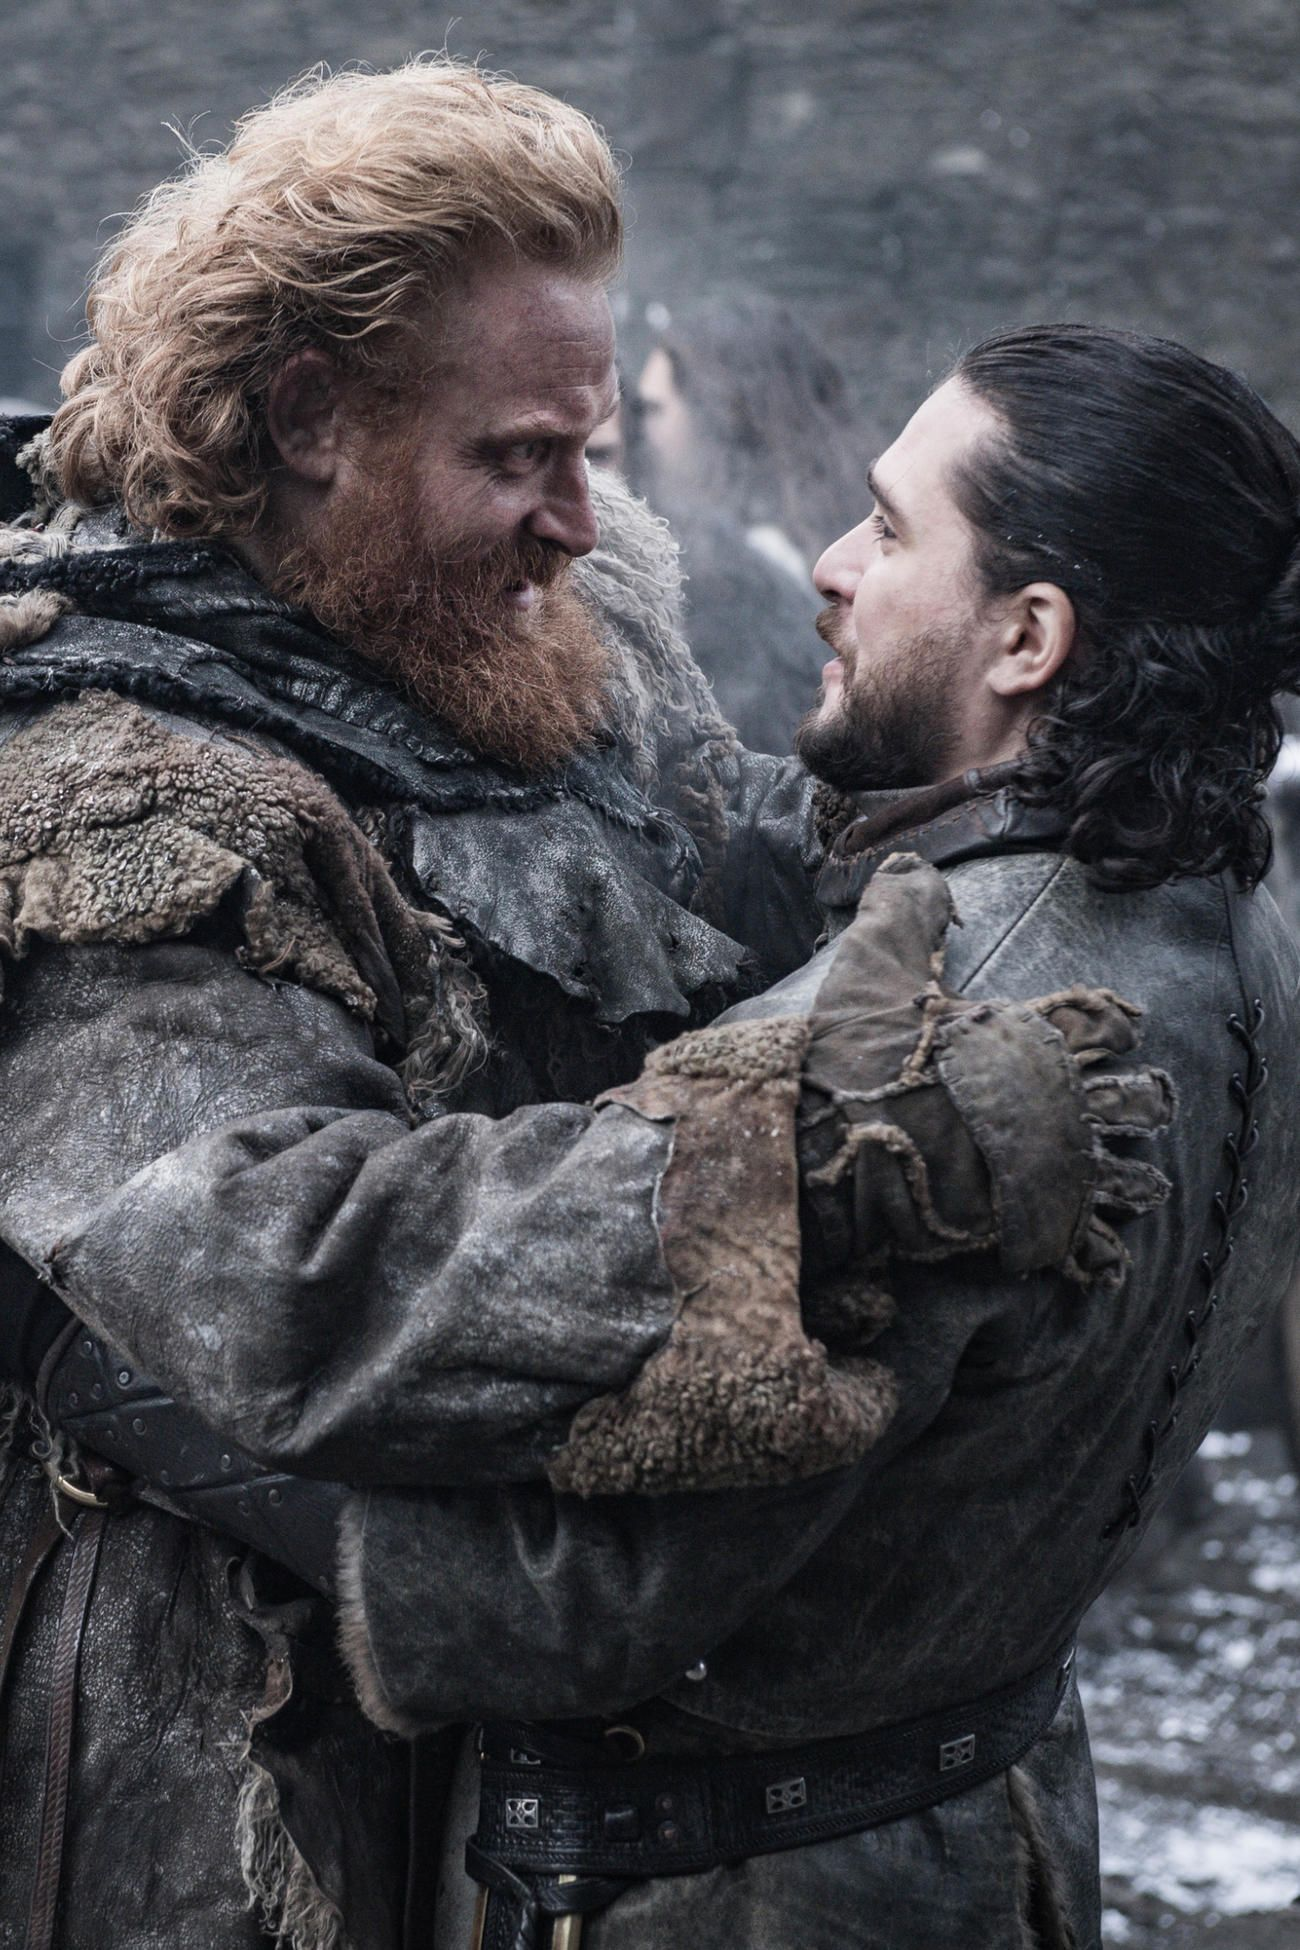 All the Photos From Game of Thrones Season 8 : Tormund and Jon Snow in Game of Thrones Season 8, Episode 2: A Knight of the Seven Kingdoms | TV Guide